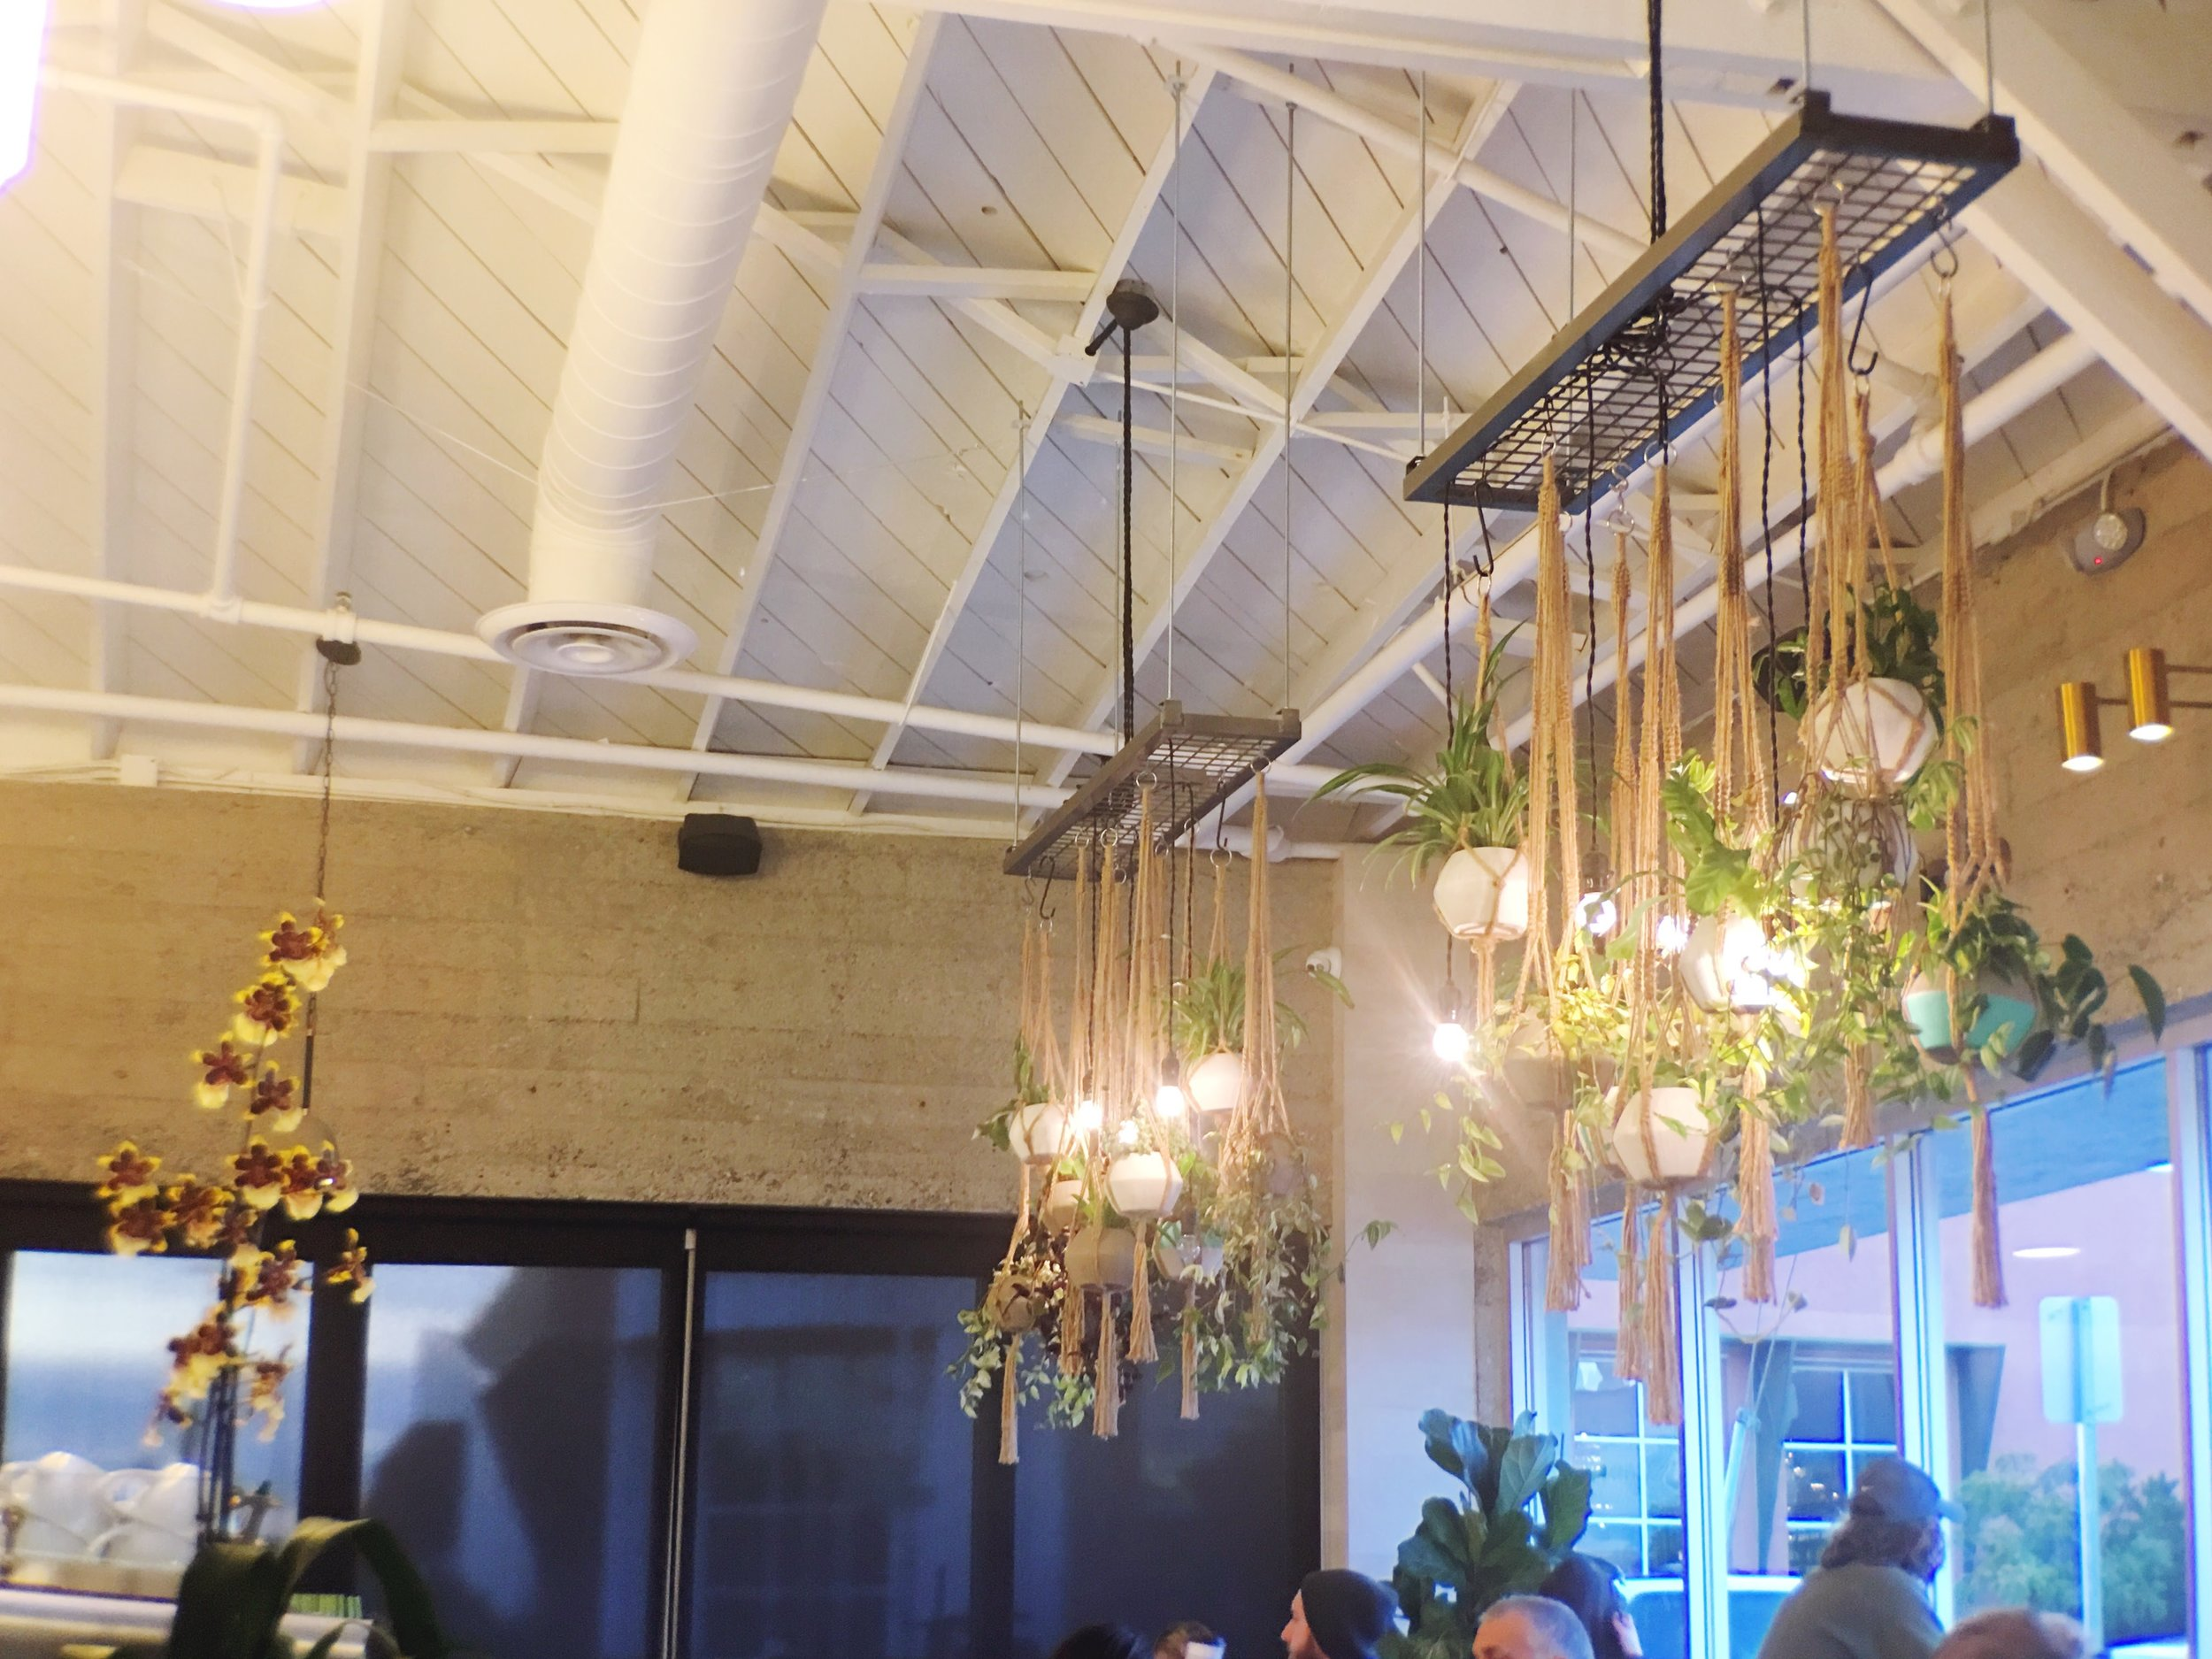 Hanging Lights decorated with plants at Verve Coffee Roasters in Santa Cruz, CA.